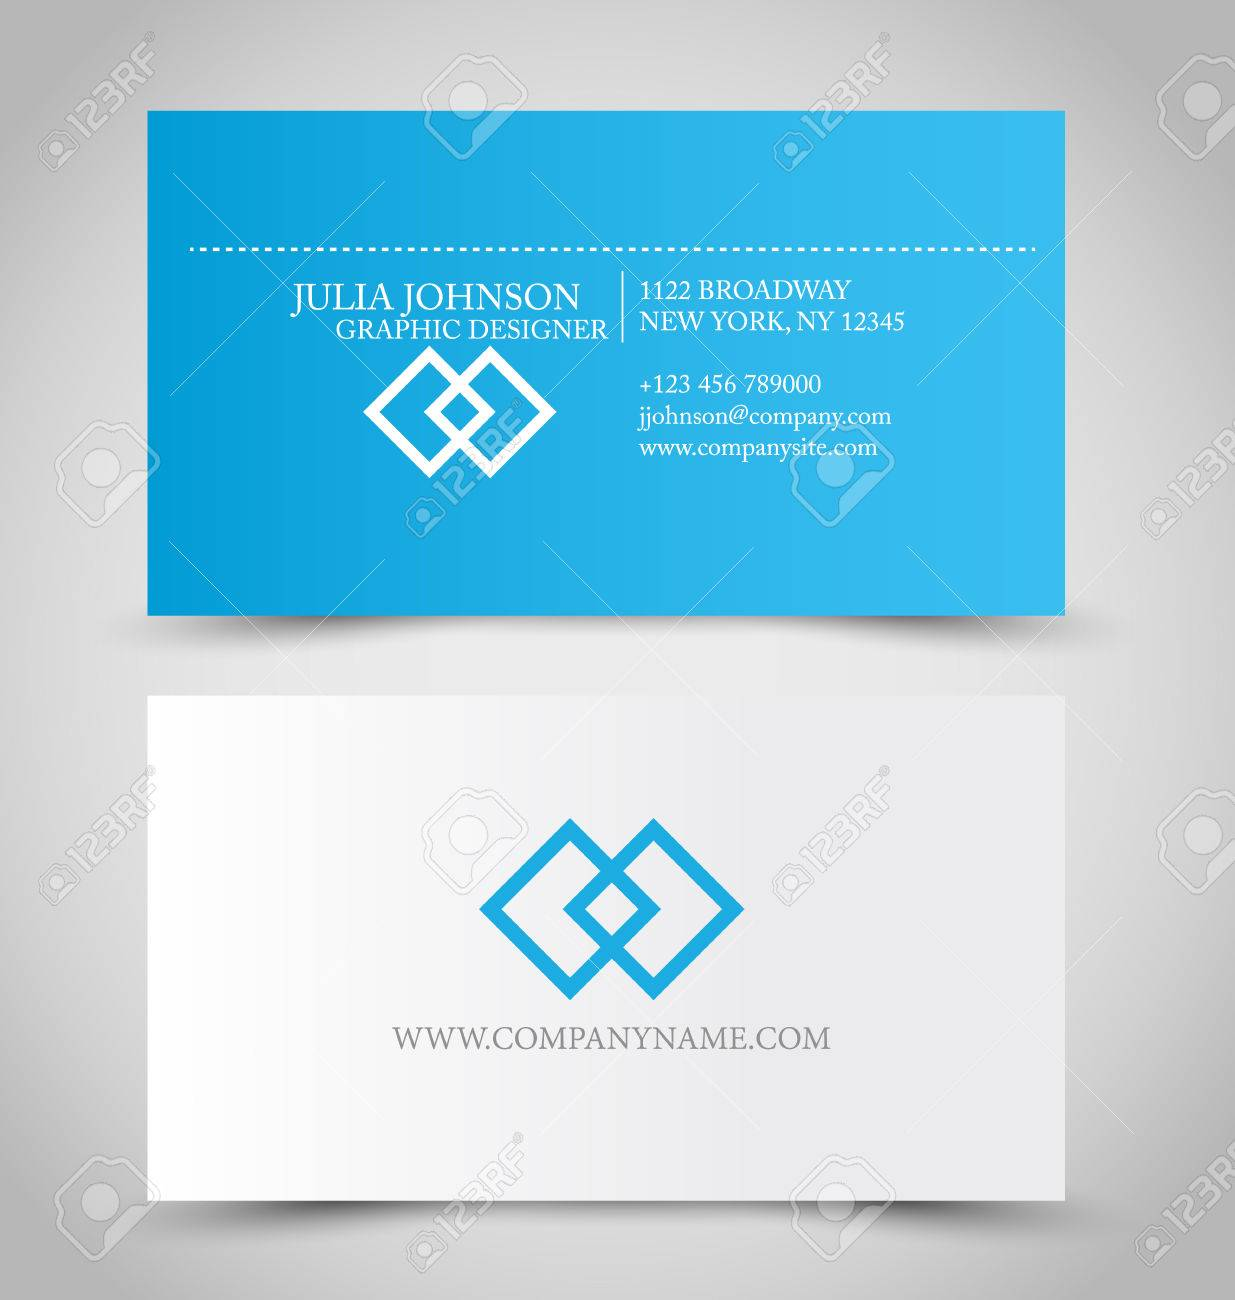 Business card blue gallery free business cards business card set template for business identity corporate style business card set template for business identity magicingreecefo Gallery